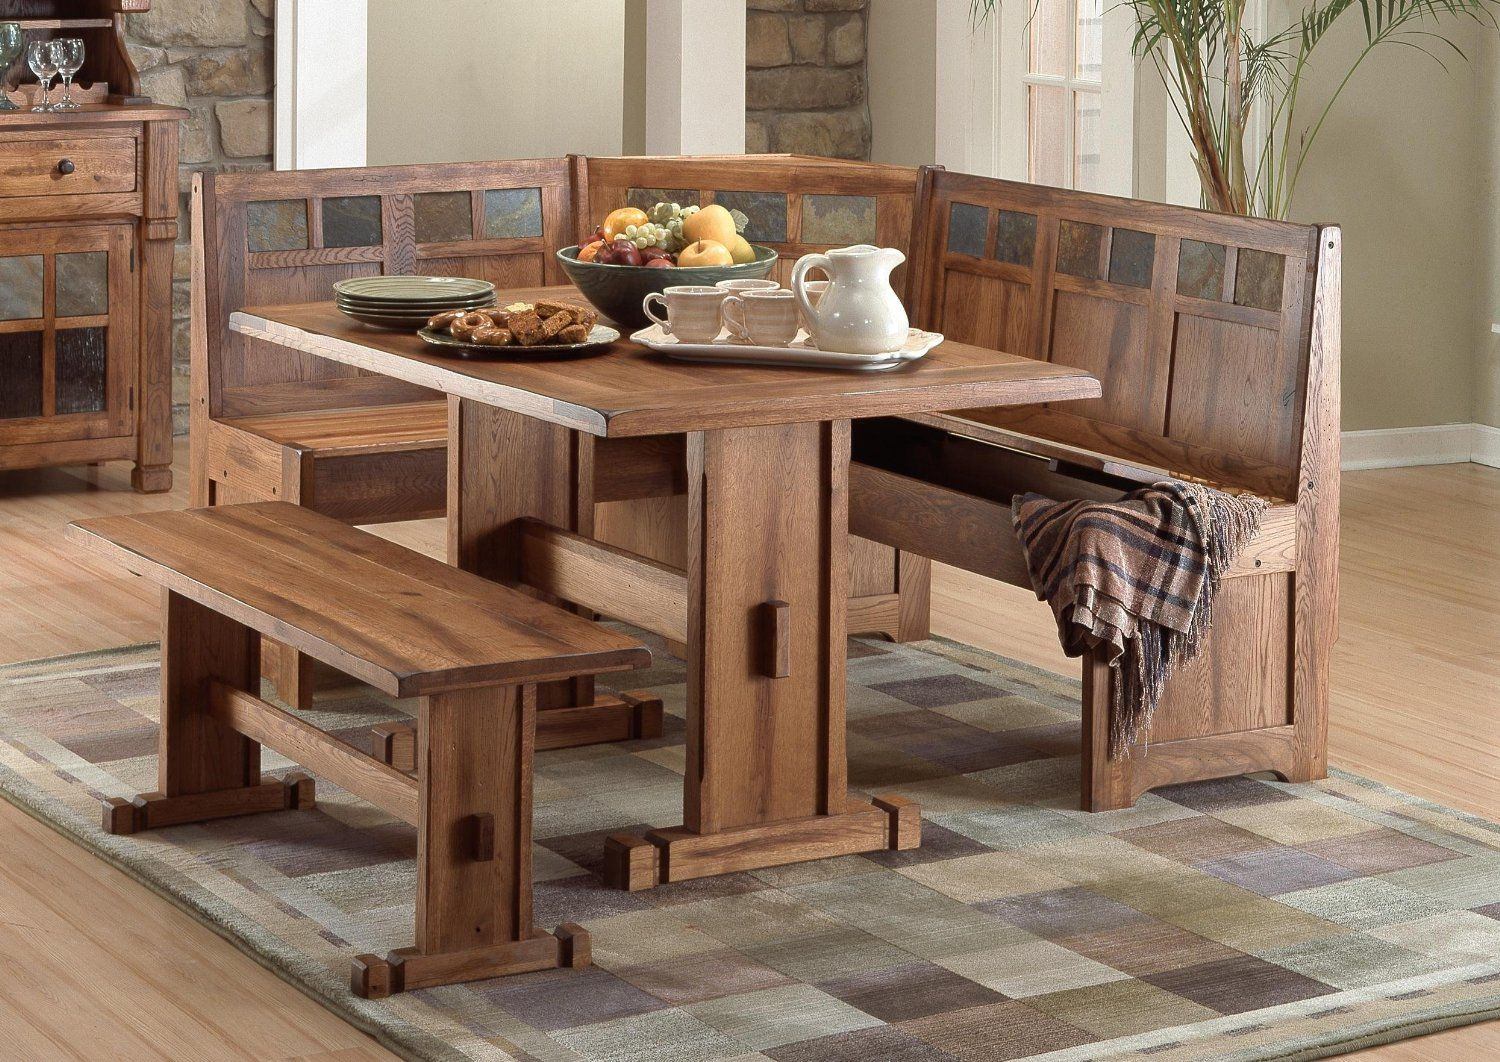 Kitchen table with bench seating and chairs  Wood Kitchen Table With Bench Seating Designs Ideas  Table plans